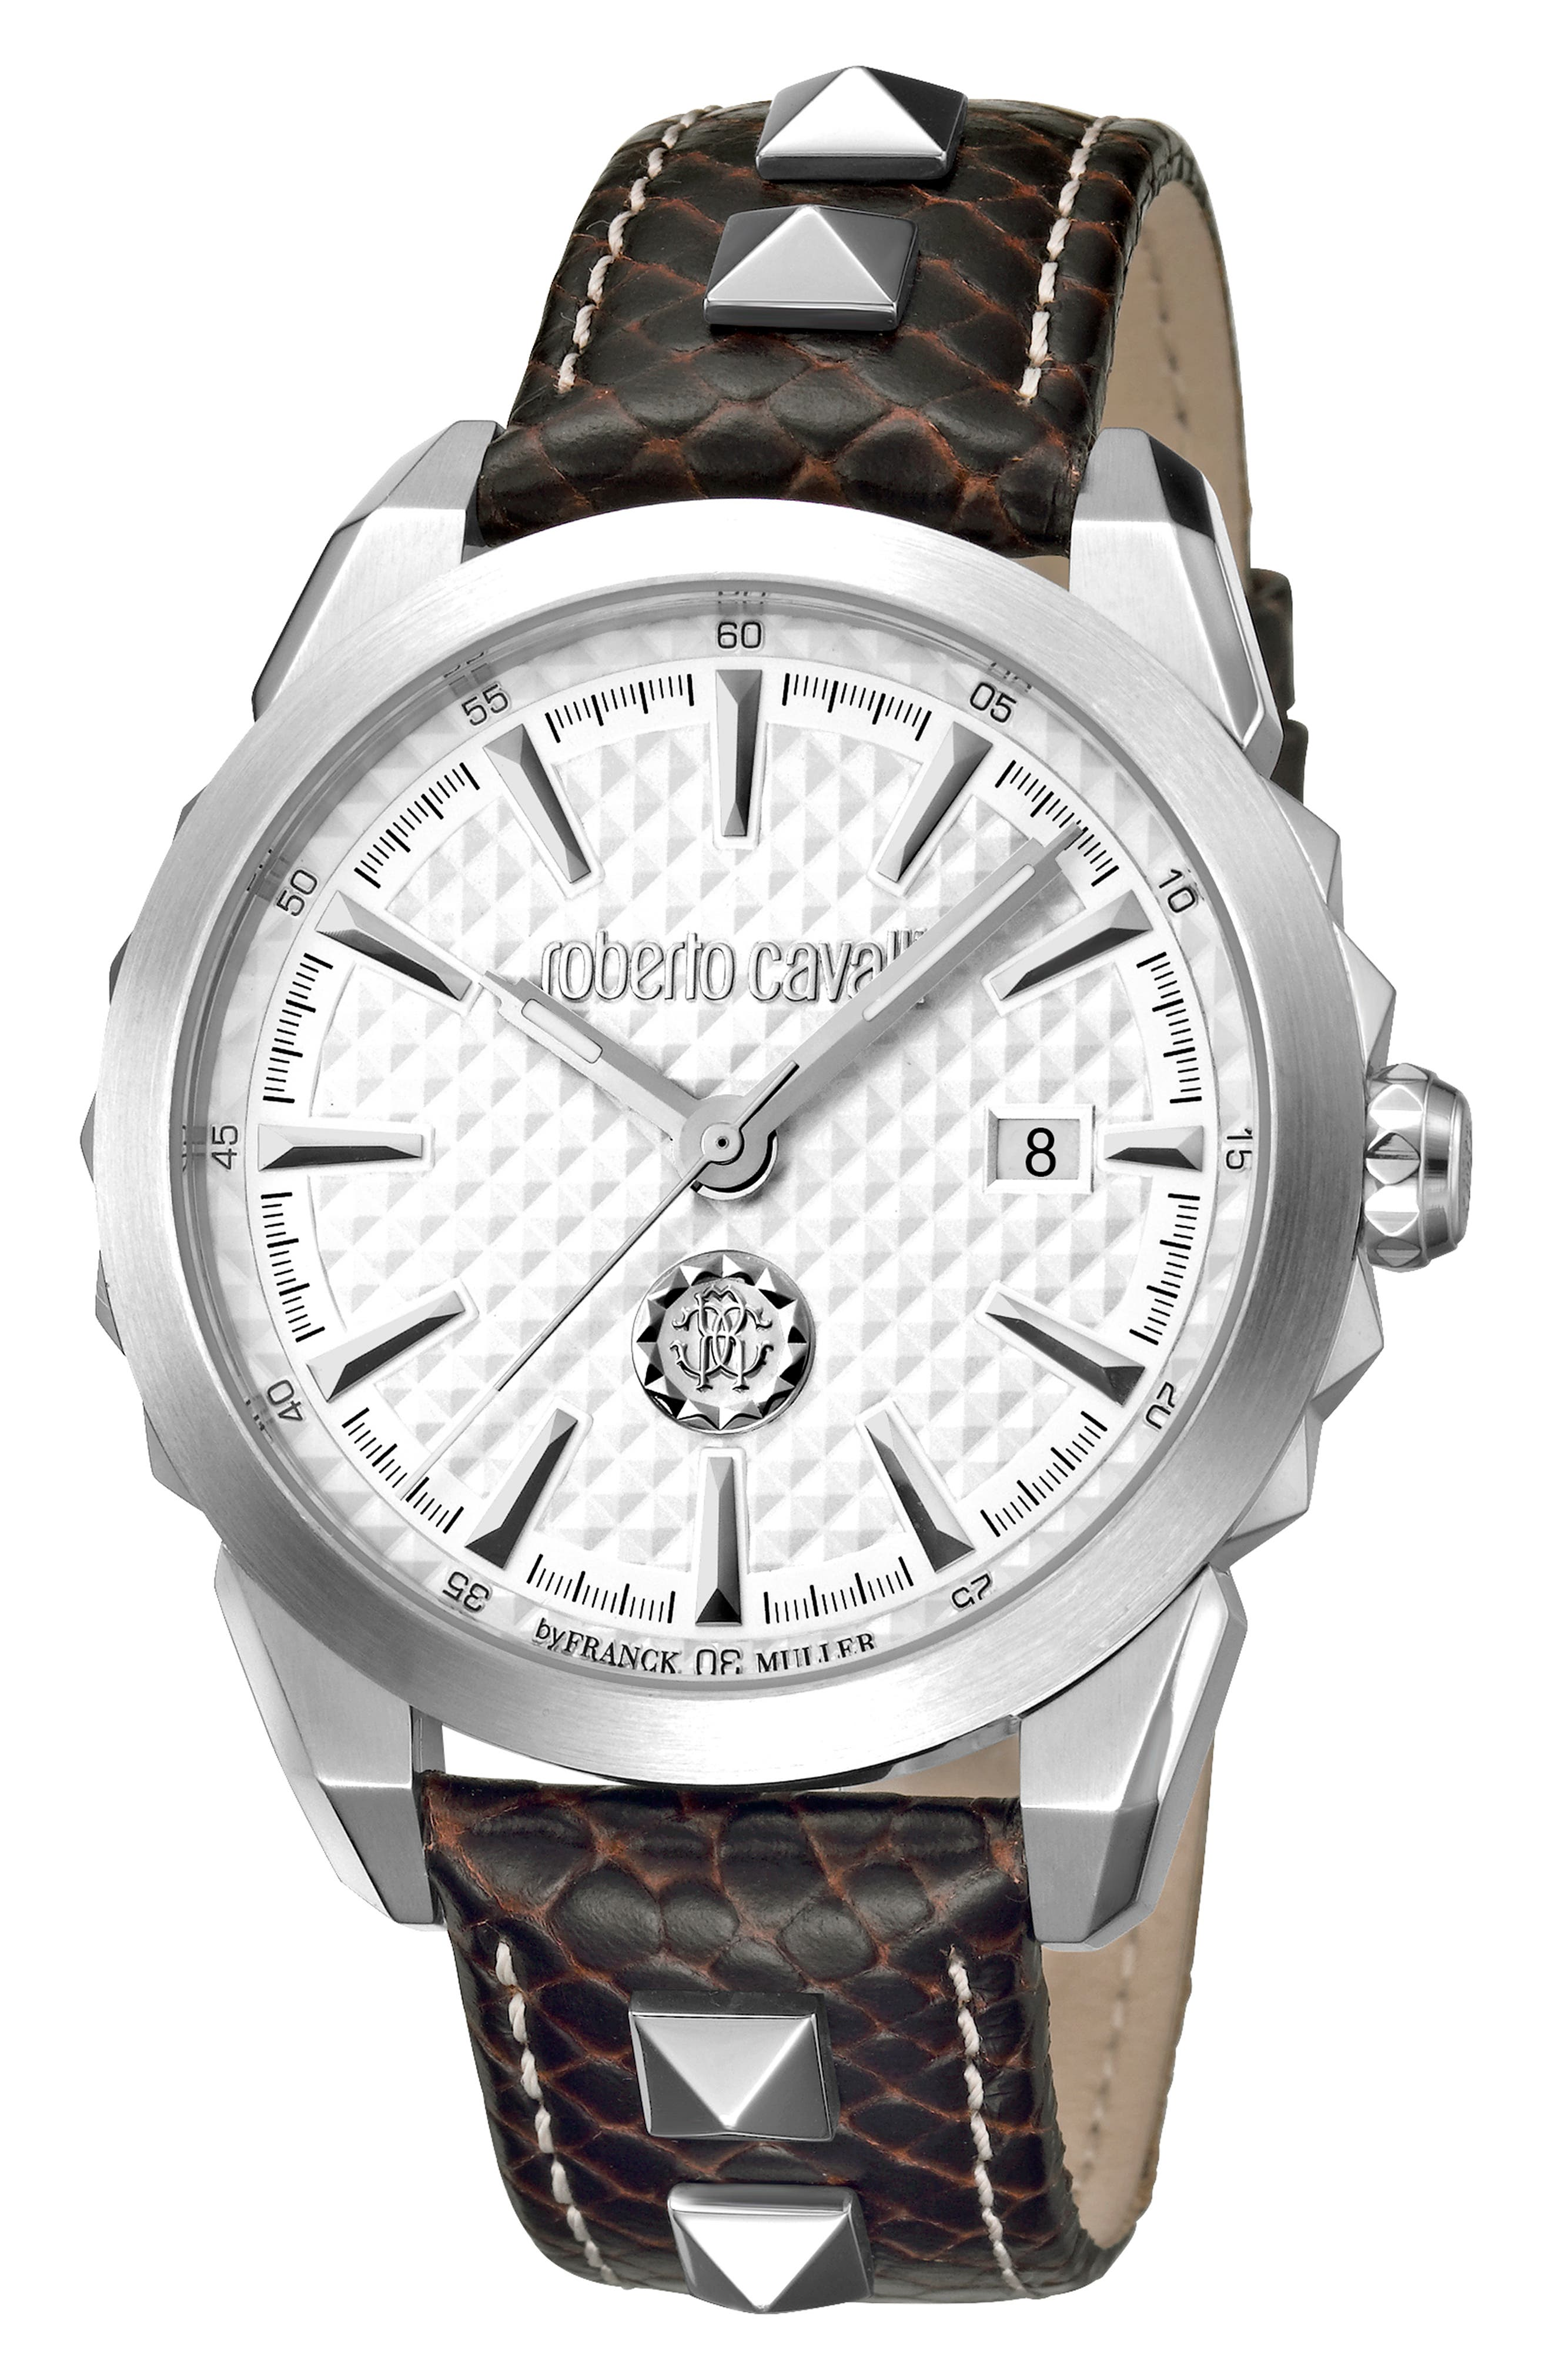 Costellato Leather Strap Watch,                             Main thumbnail 1, color,                             BROWN/ SILVER